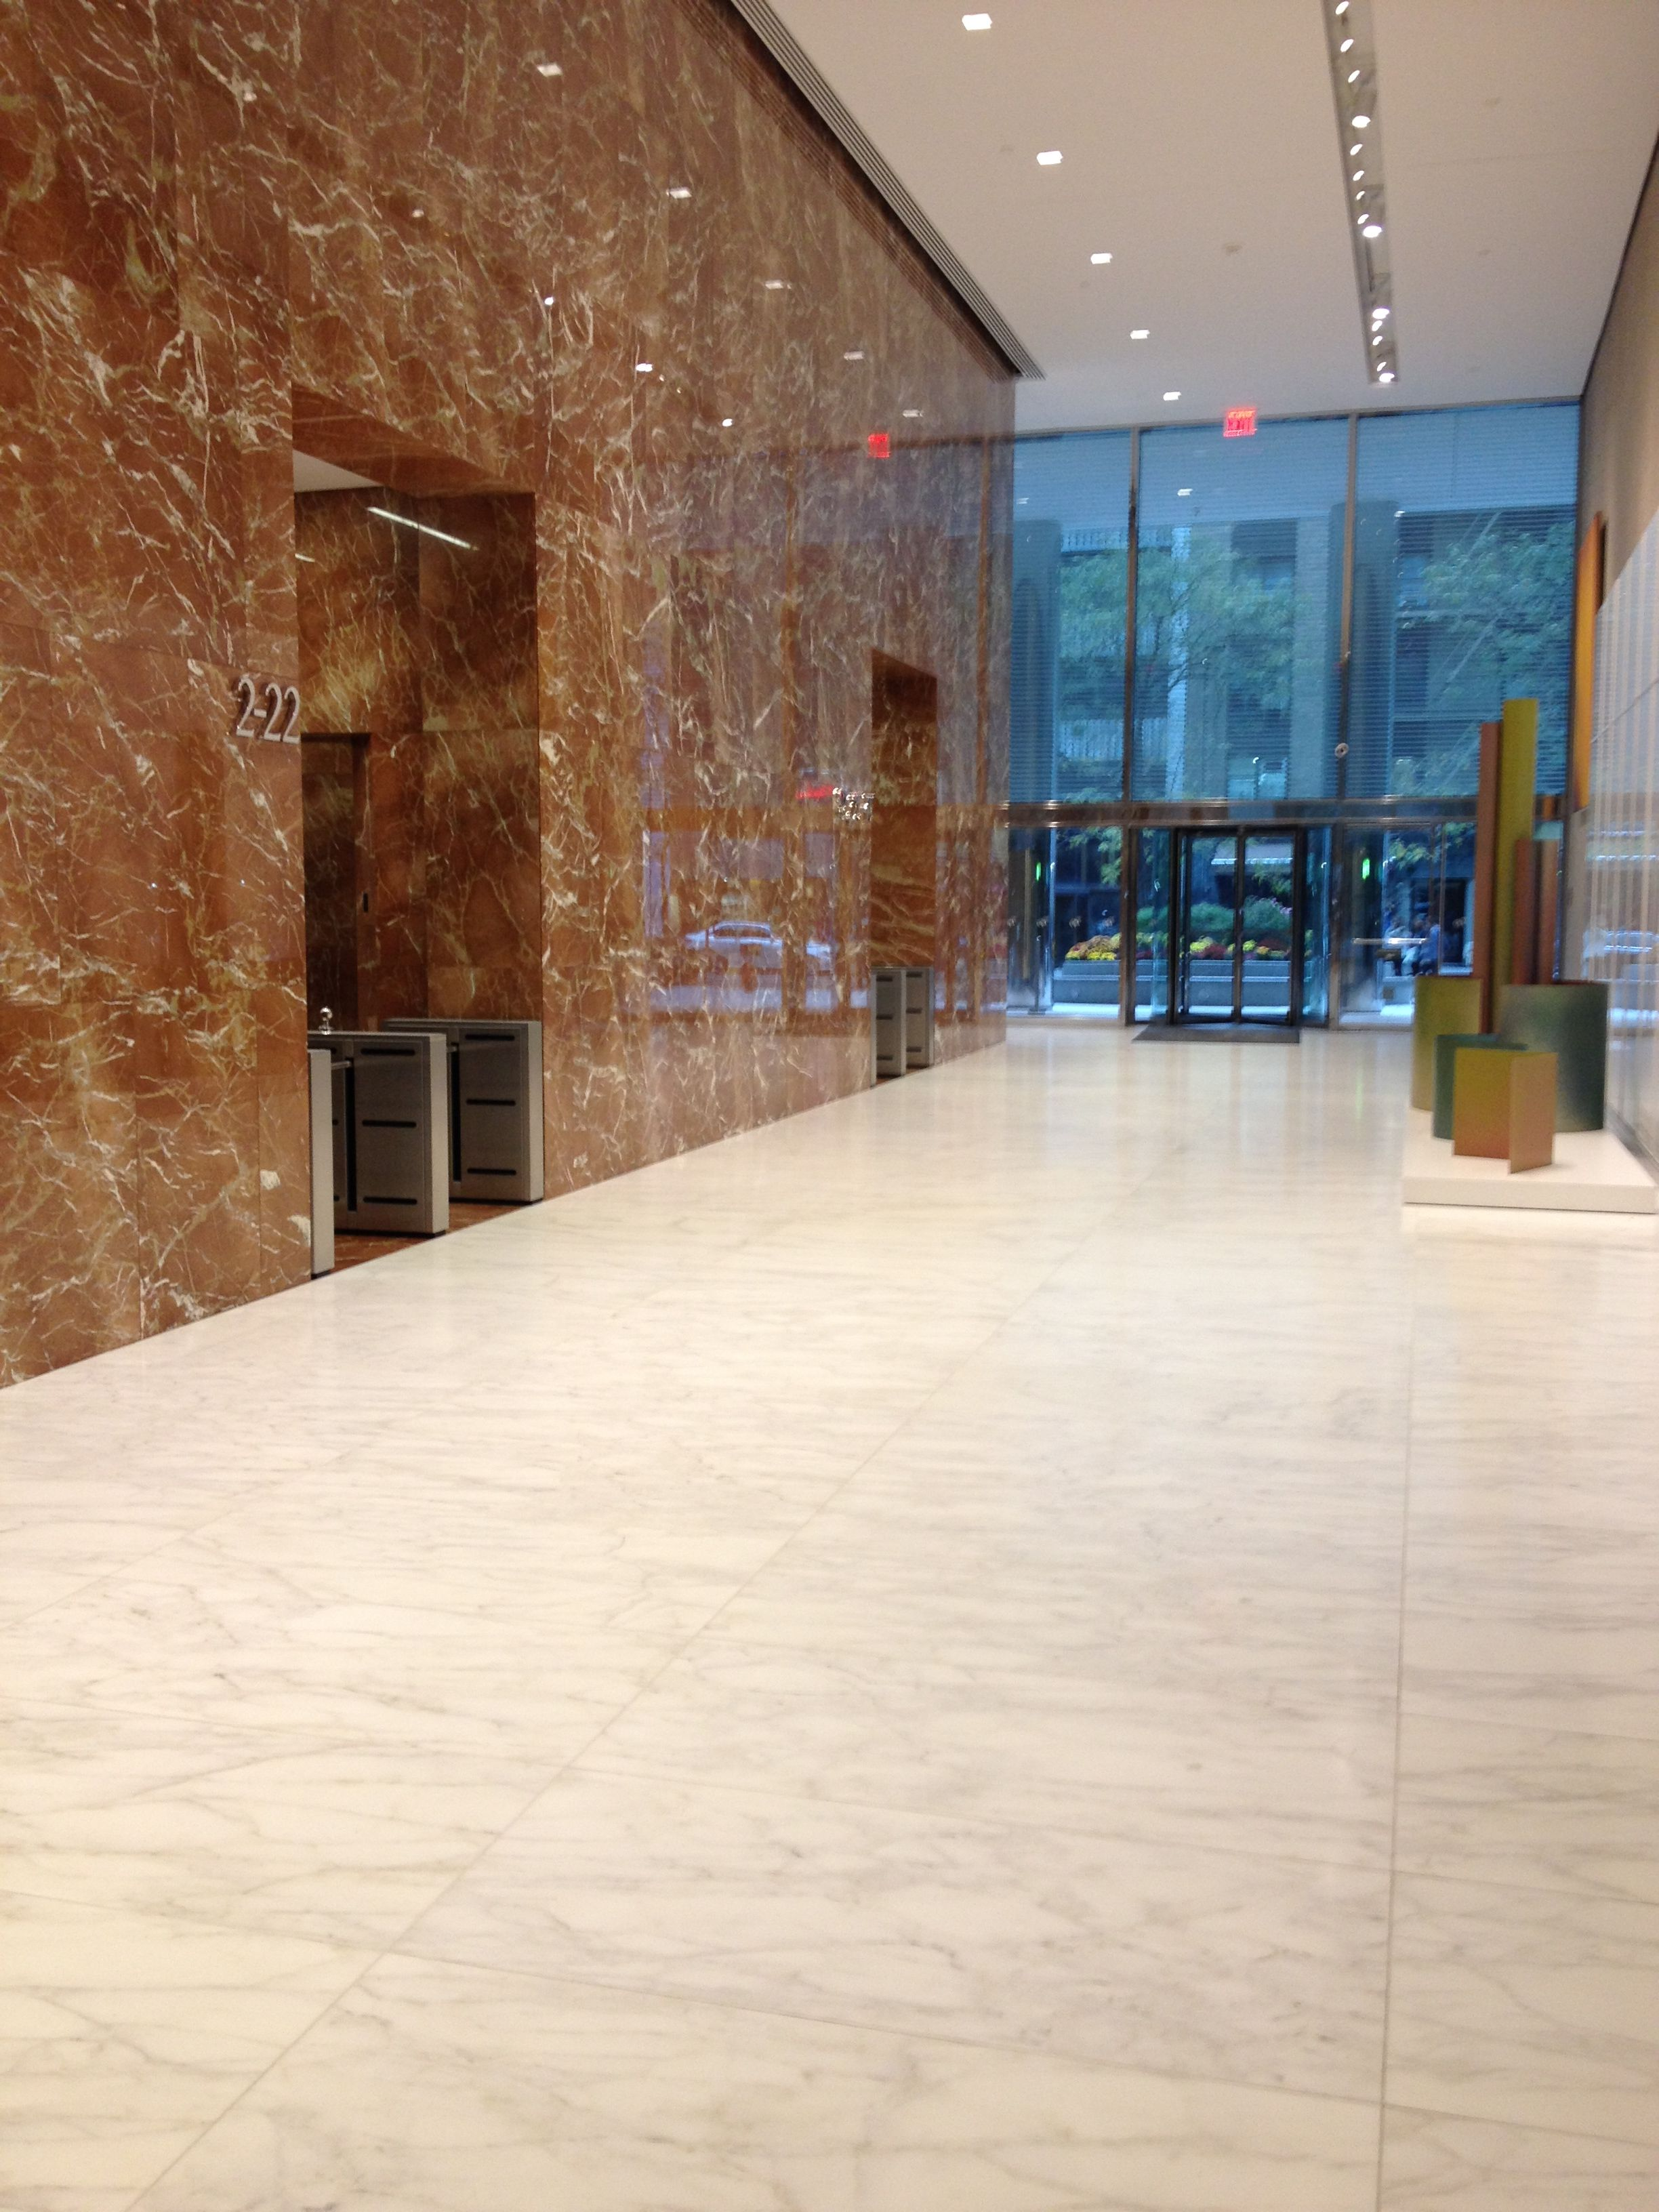 Küche Marmorboden Lobby In Nyc Showcasing Caldia Marble Floor Panels Hall